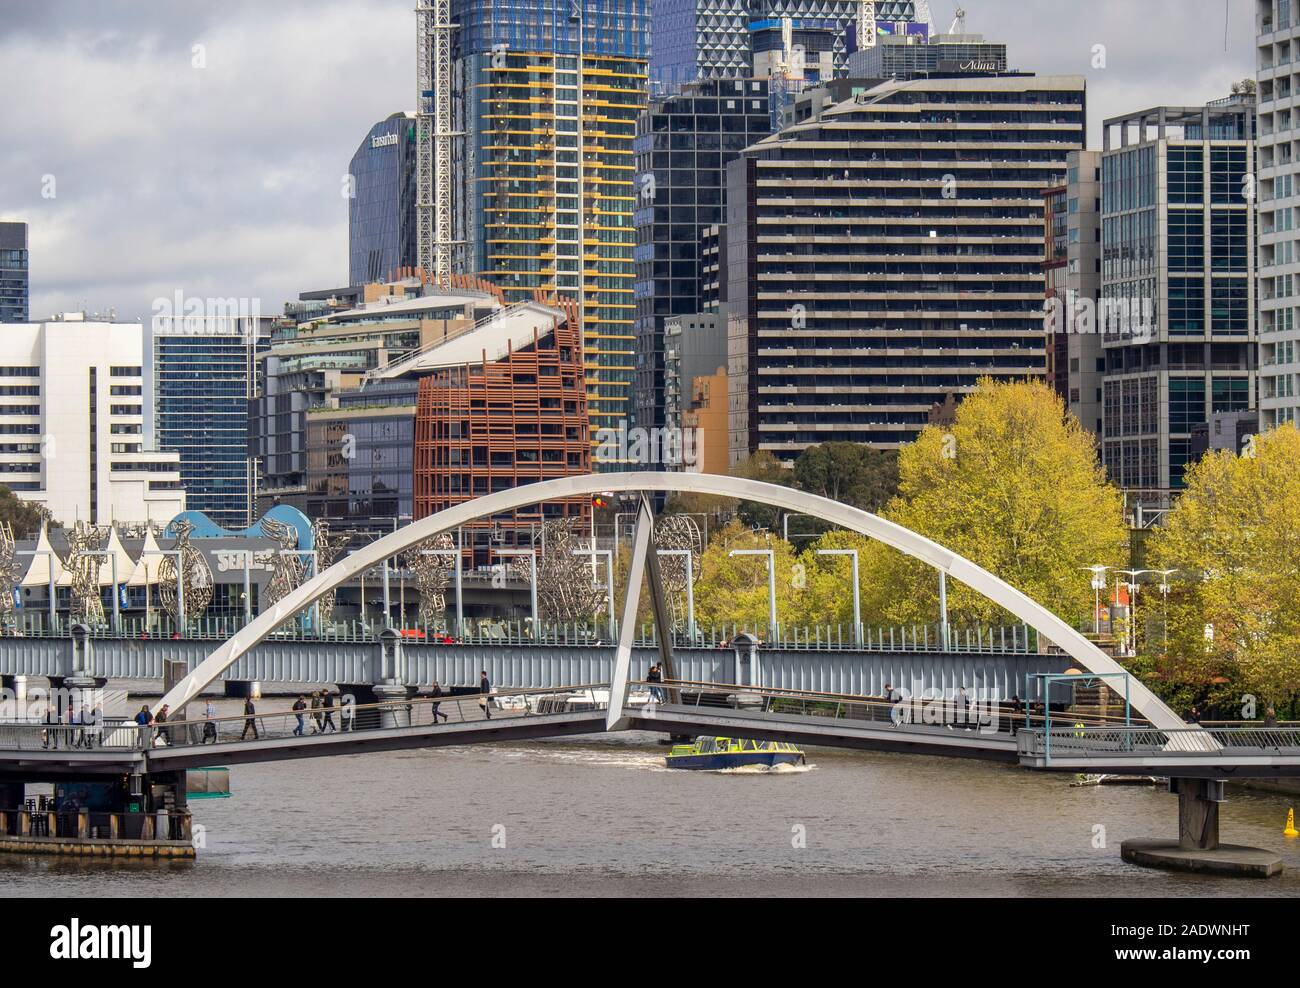 evan-walker-bridge-pedestrian-bridge-footbridge-crossing-the-yarra-river-and-sandride-bridge-in-background-melbourne-victoria-australia-2ADWNHT.jpg